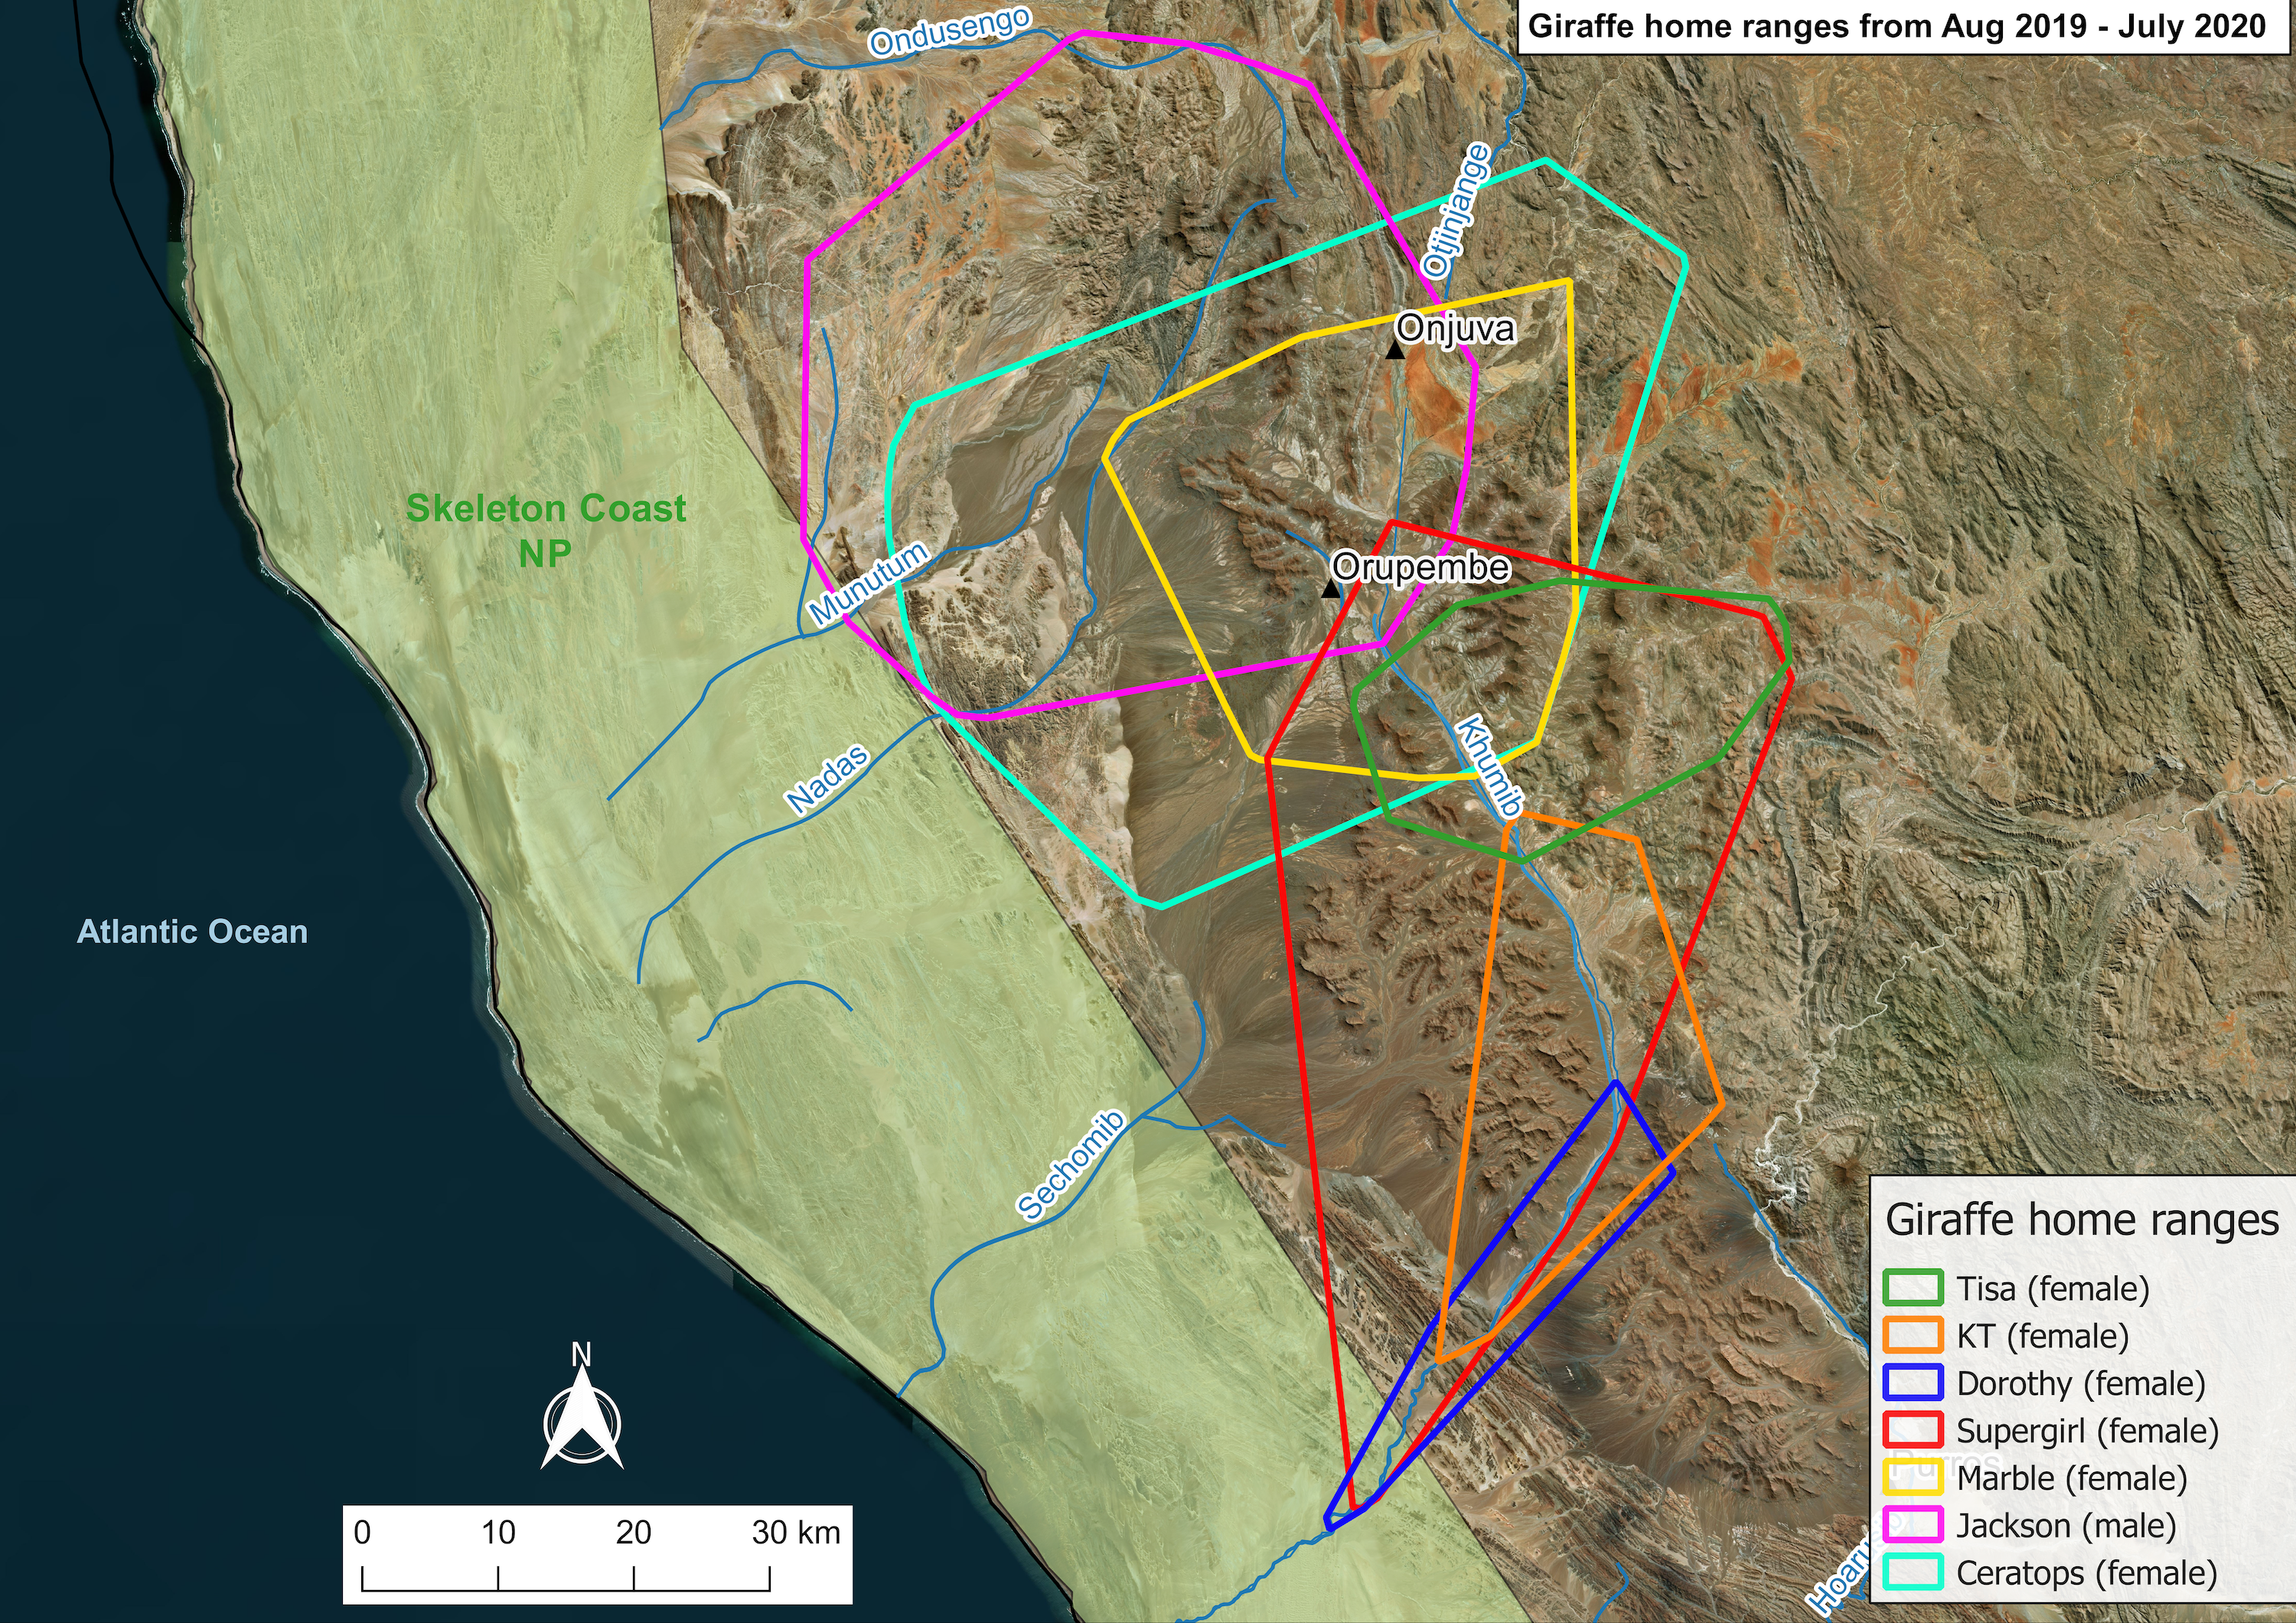 A map showing the home ranges of six female and one male giraffe in the study area.